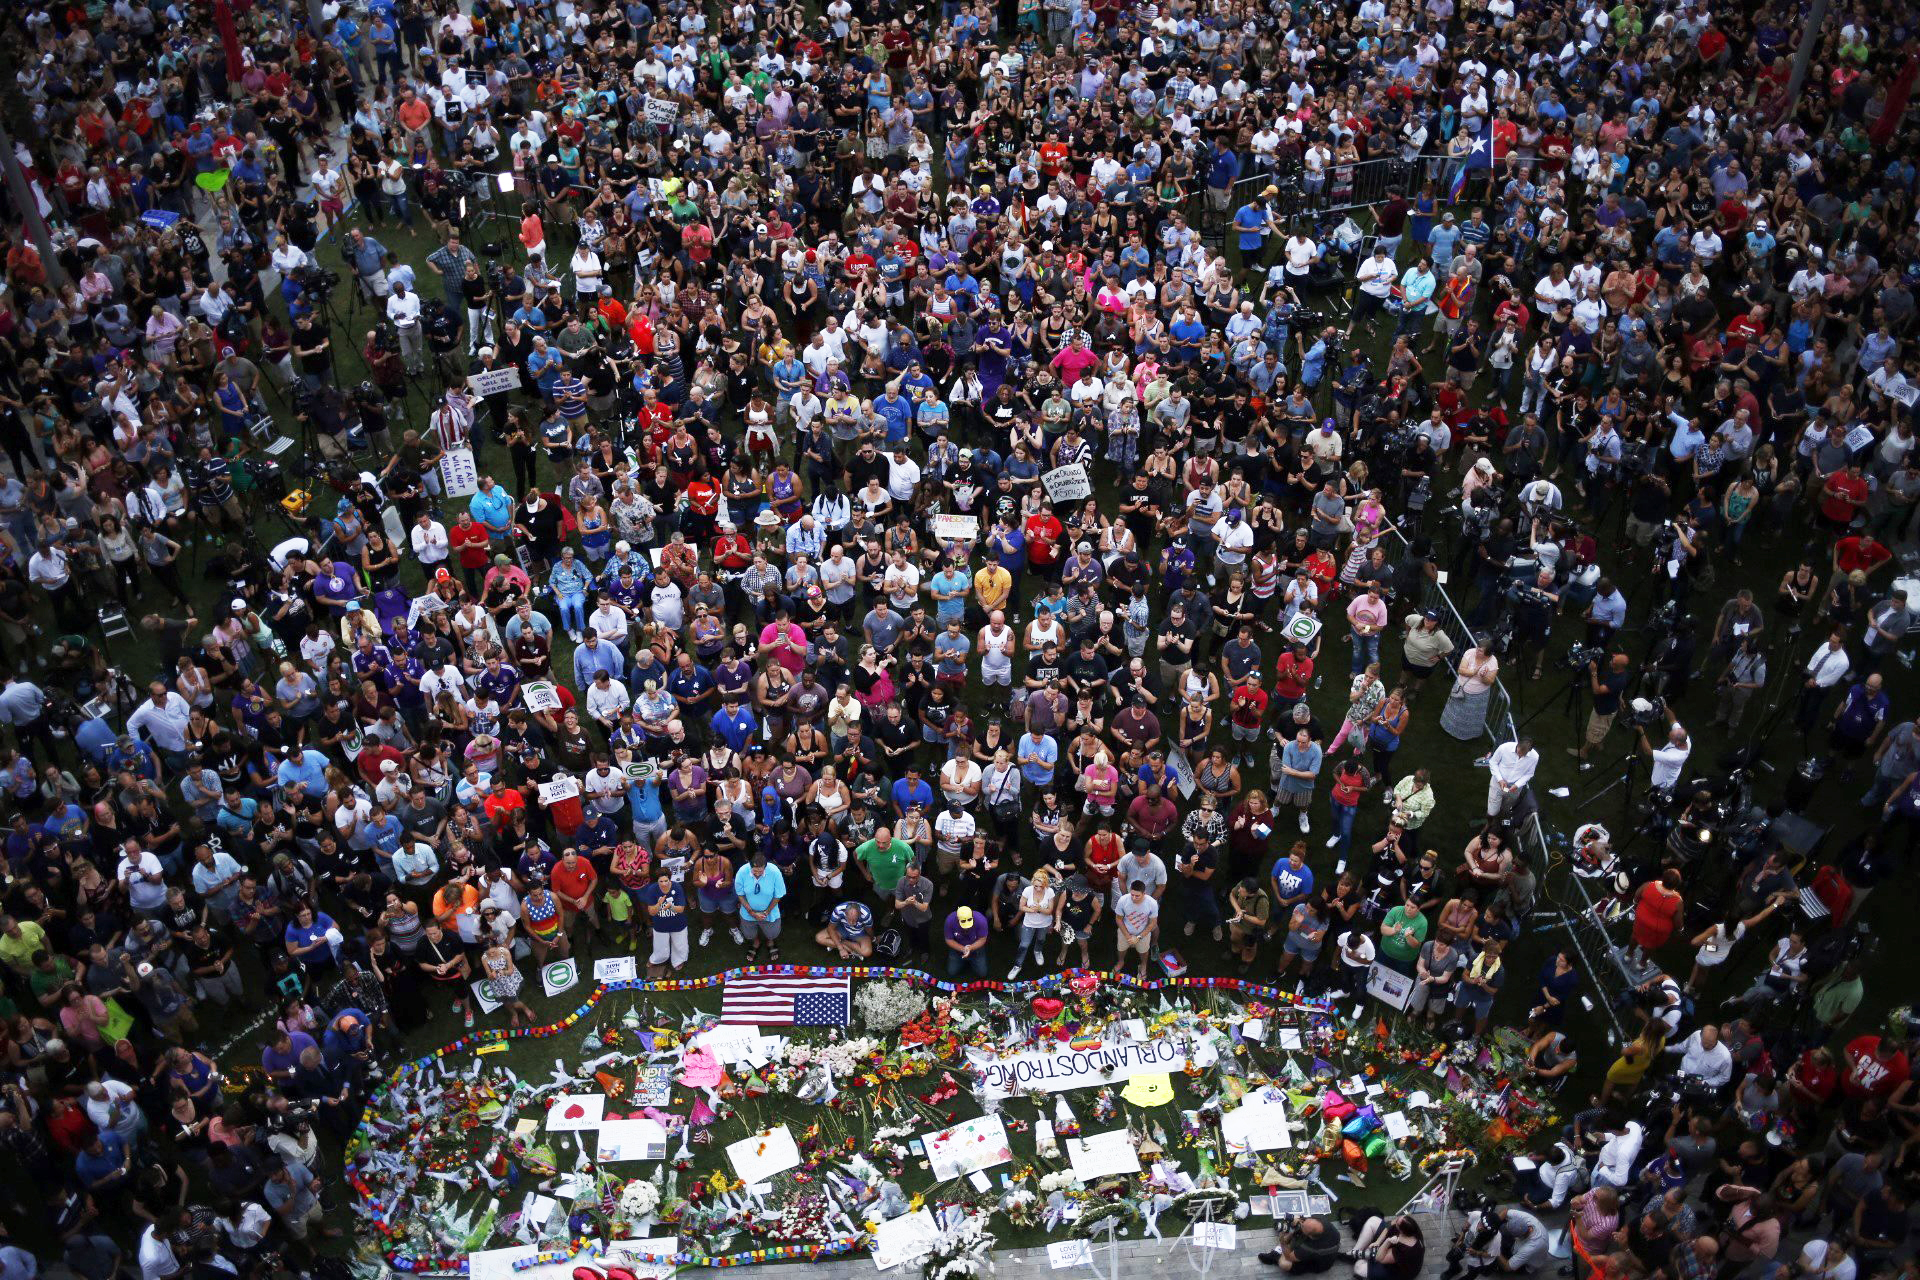 Hundreds of people gather at a memorial outside of the Dr. Phillips Center for the Performing Arts in Orlando, Fla., on June 13, 2016.